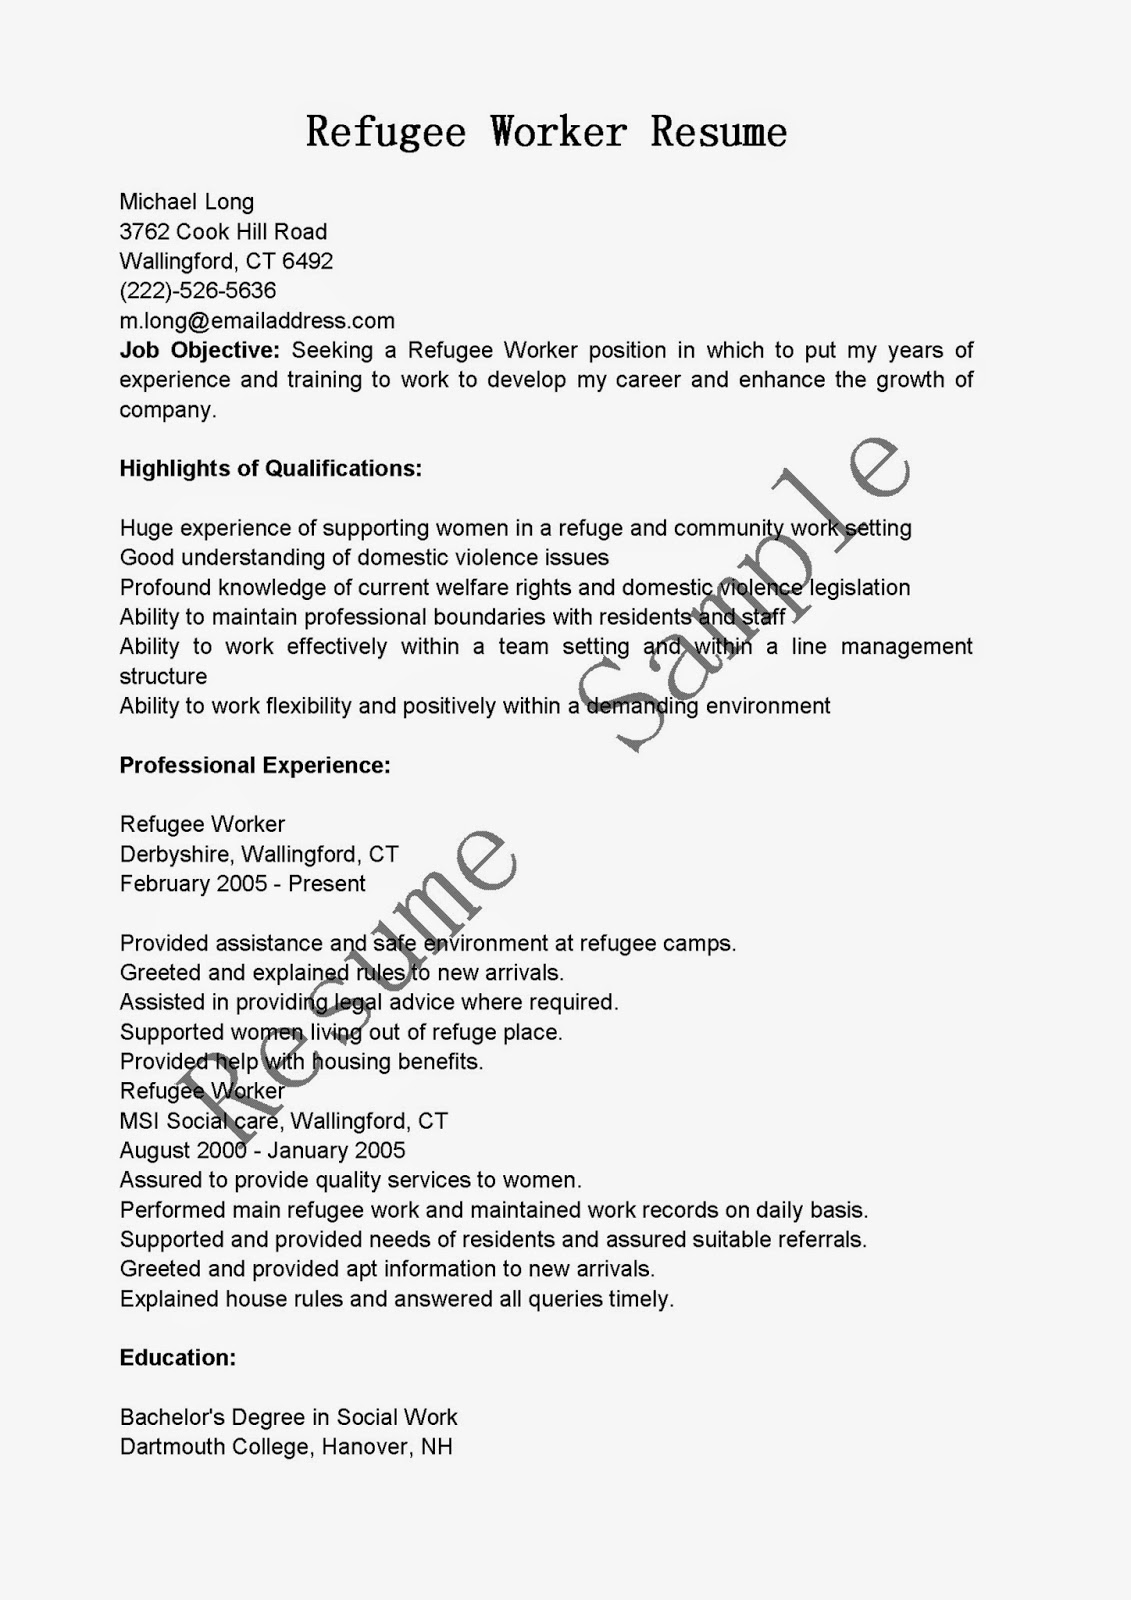 resume samples  refugee worker resume sample